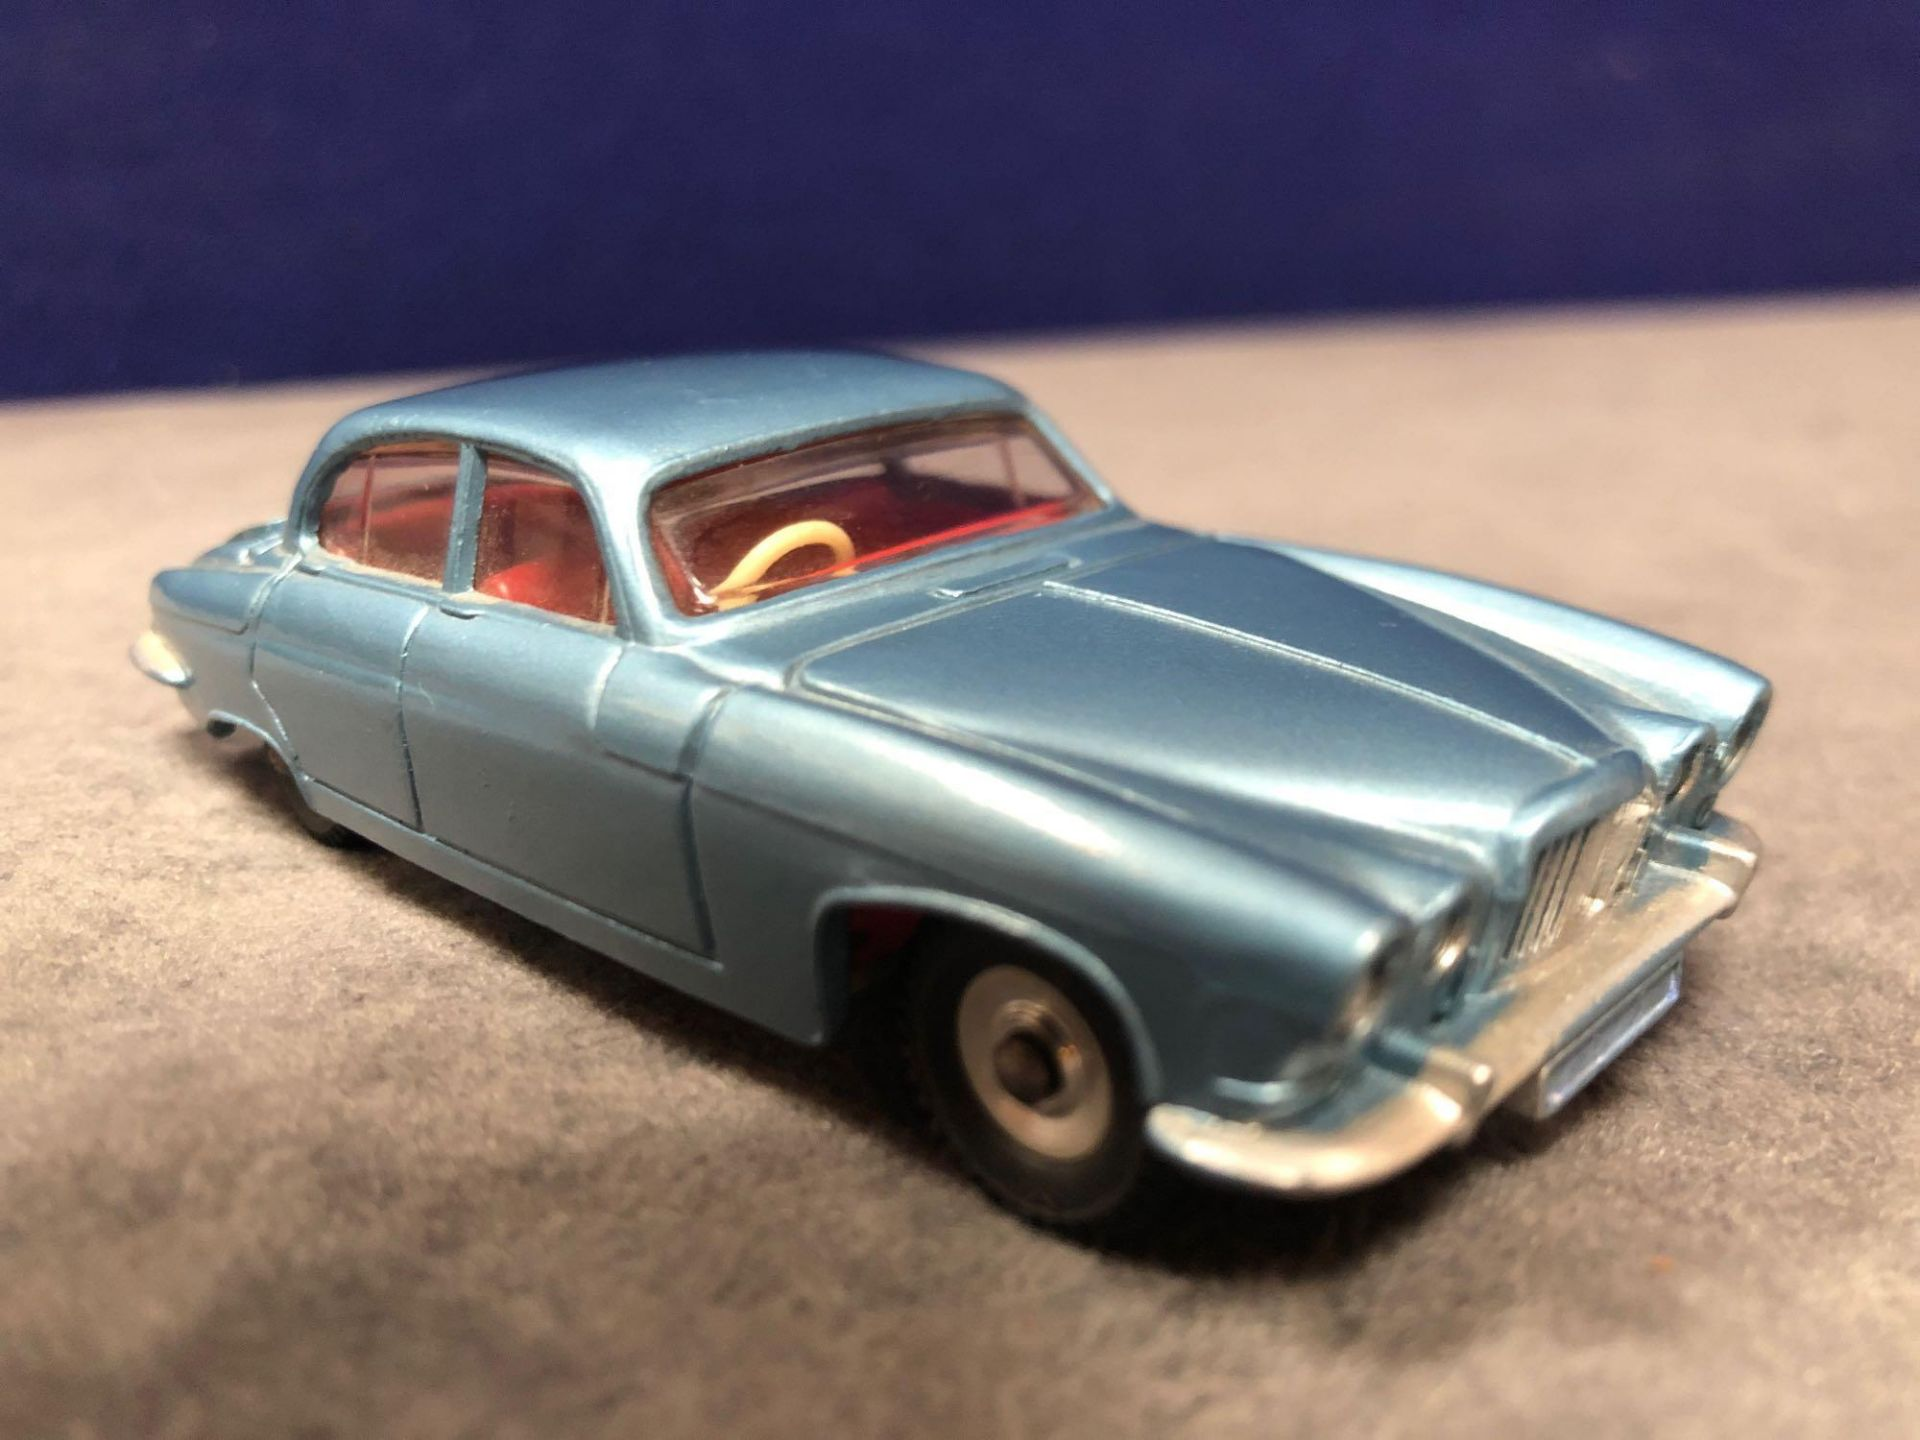 Dinky #142 Jaguar Mark X In Blue With Red Interior 1962-1968 Unboxed Mint Lovely Model - Image 2 of 4